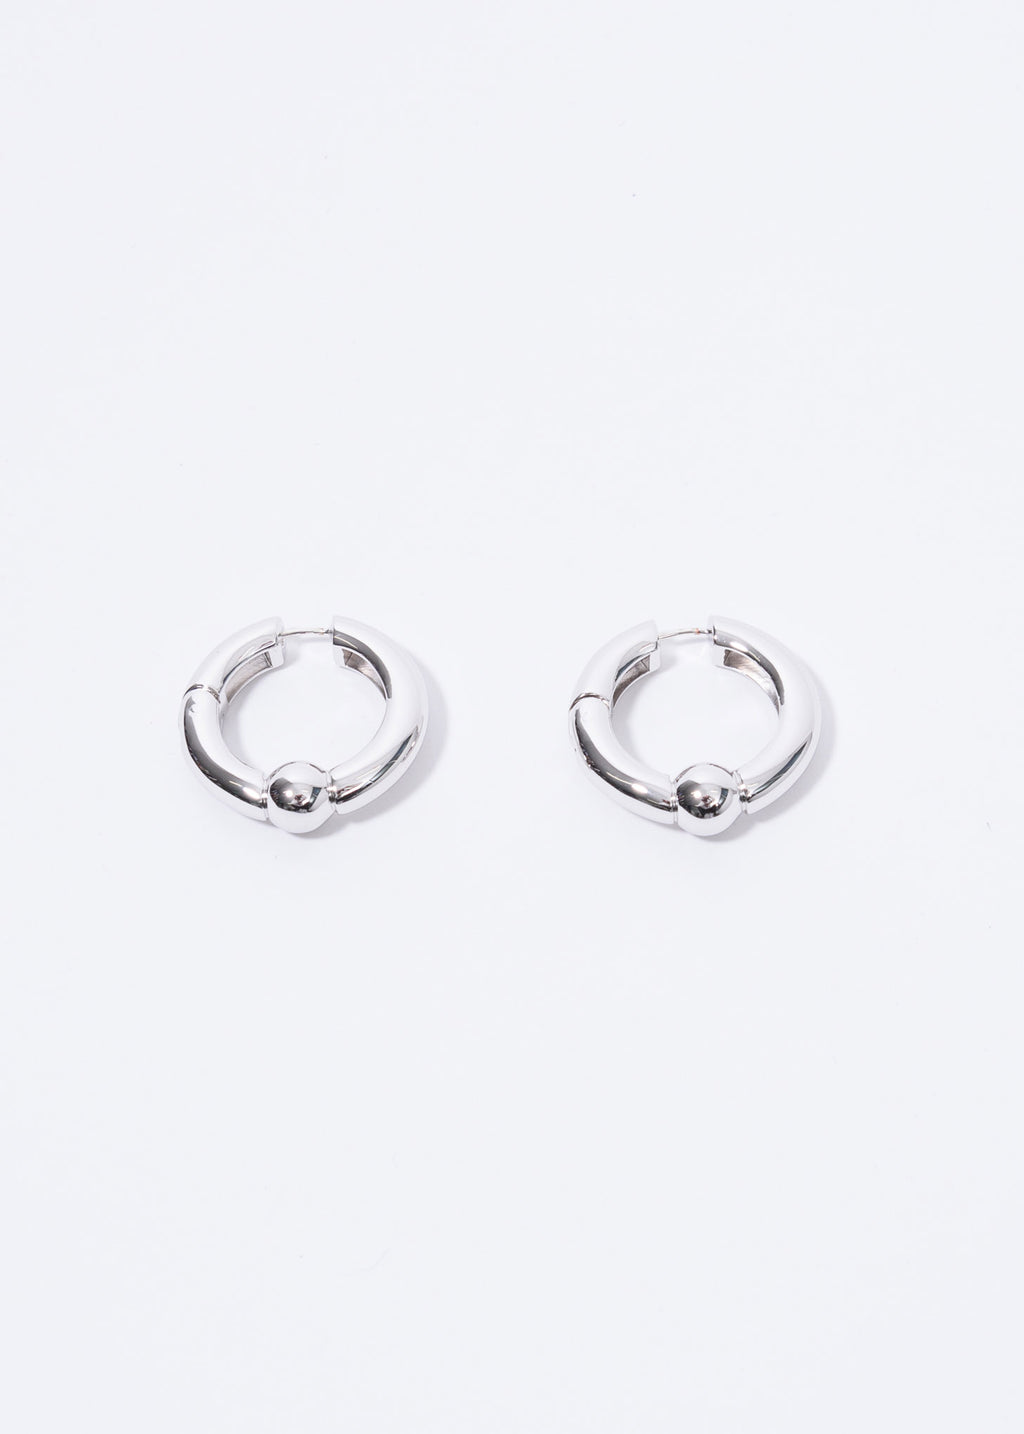 Silver Ball Closure Earrings